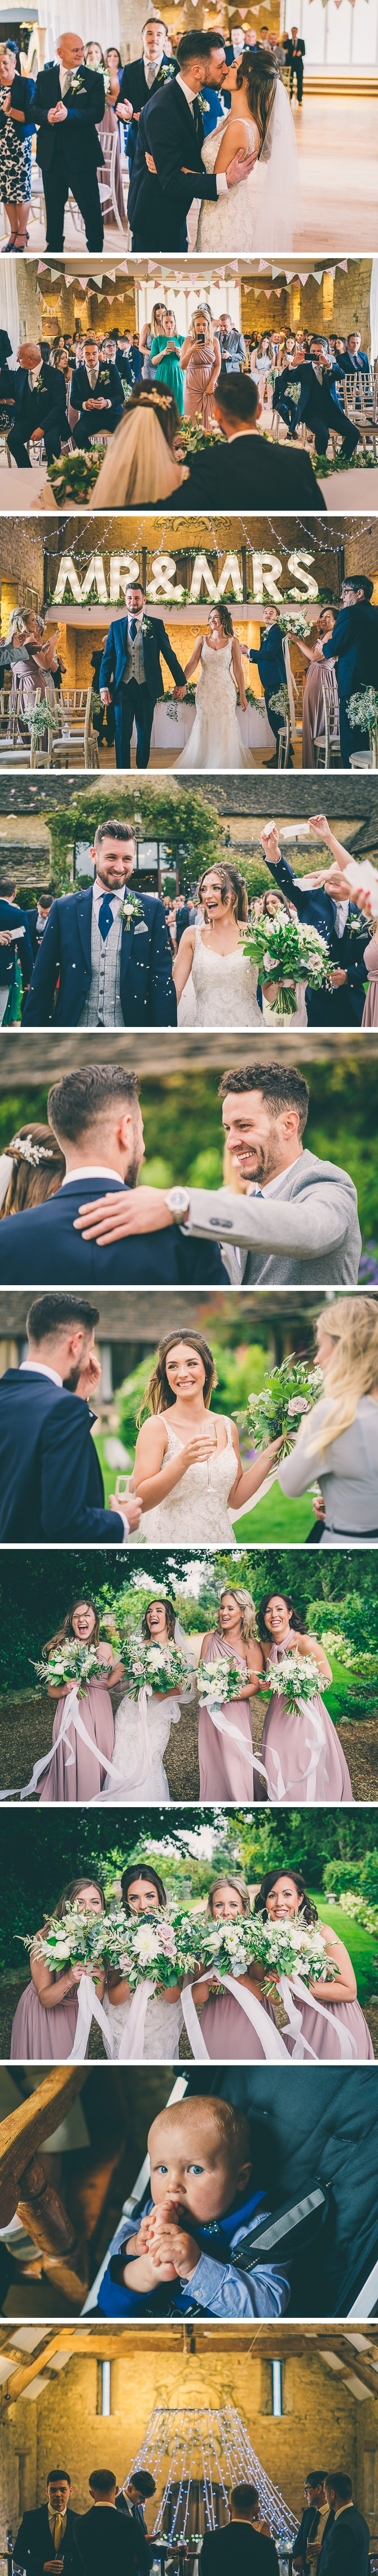 Drinks reception at Great Tythe Barn